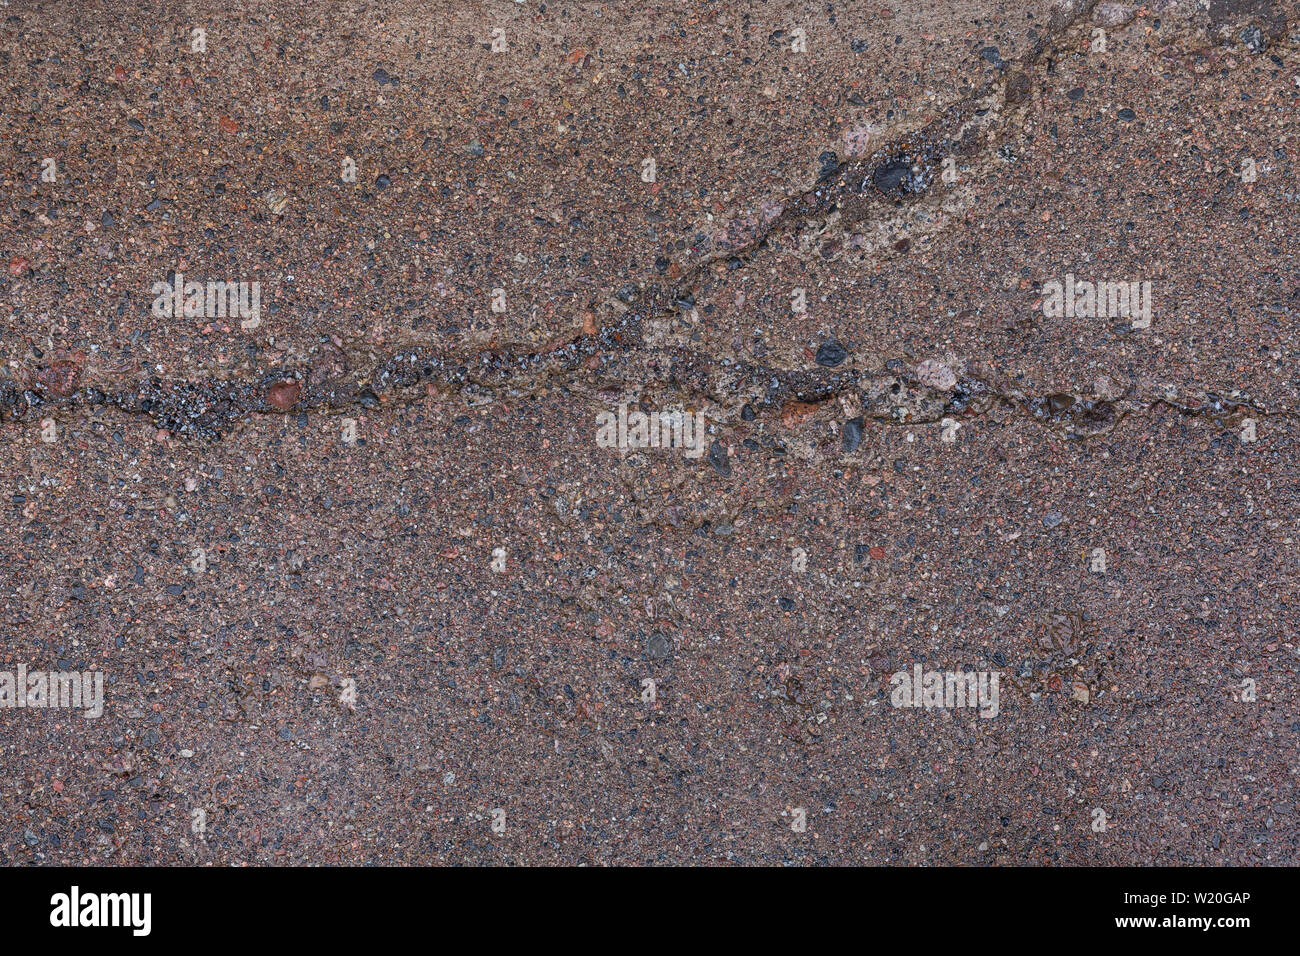 Close-up of a wet, weathered and cracked concrete footpath surface with pebbles (or pebblecrete or exposed aggregate) outdoors, viewed from above. Stock Photo